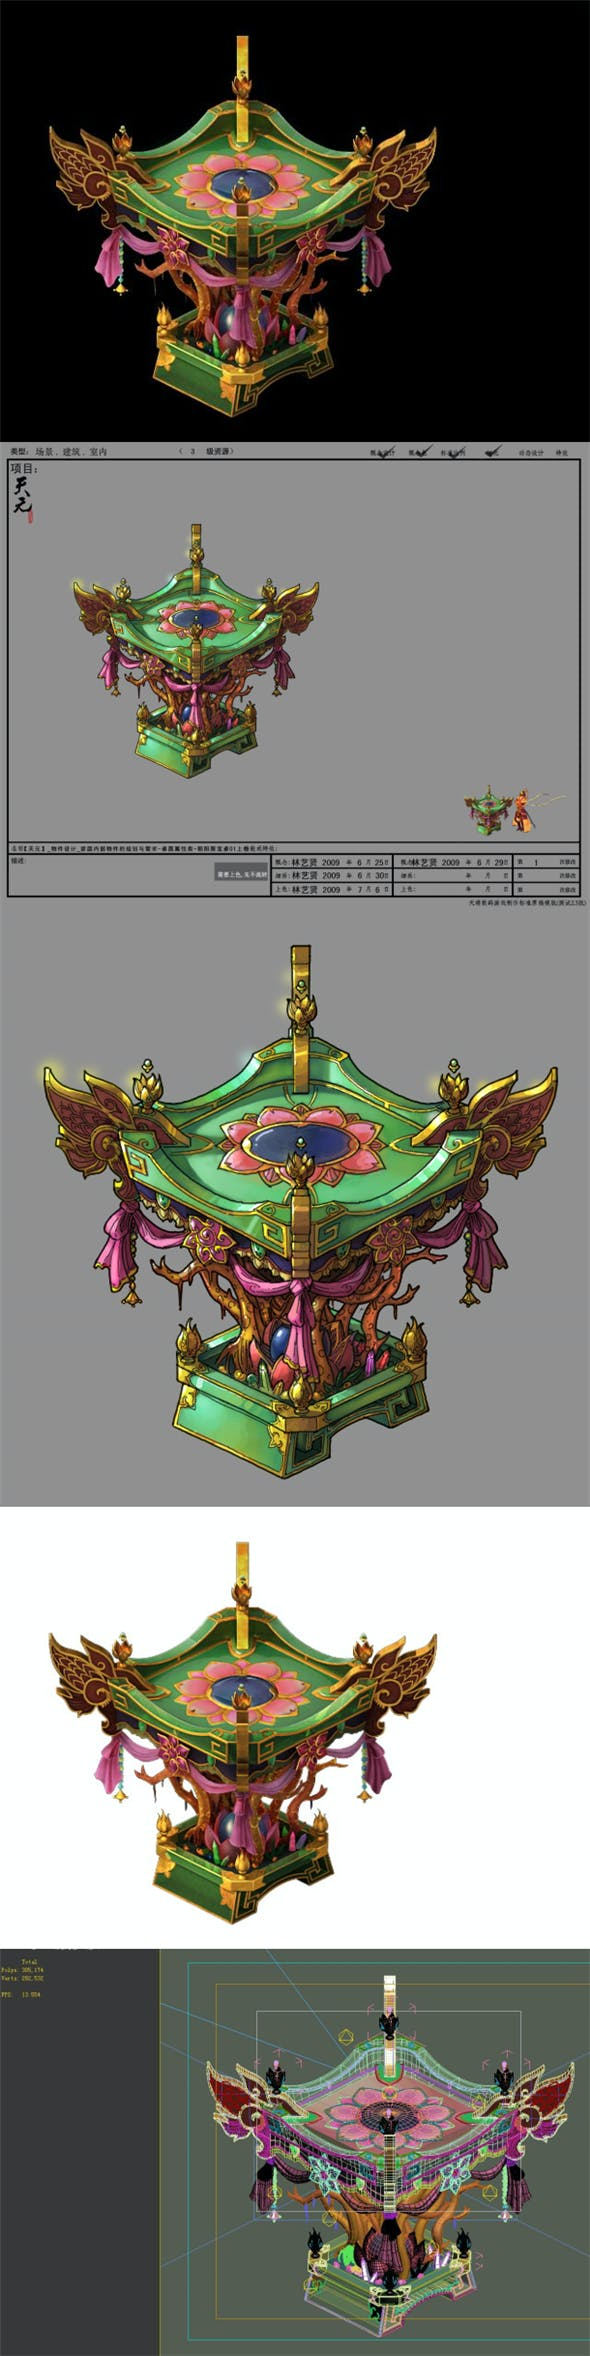 Game Model - Family Objects - Table 06 - 3DOcean Item for Sale